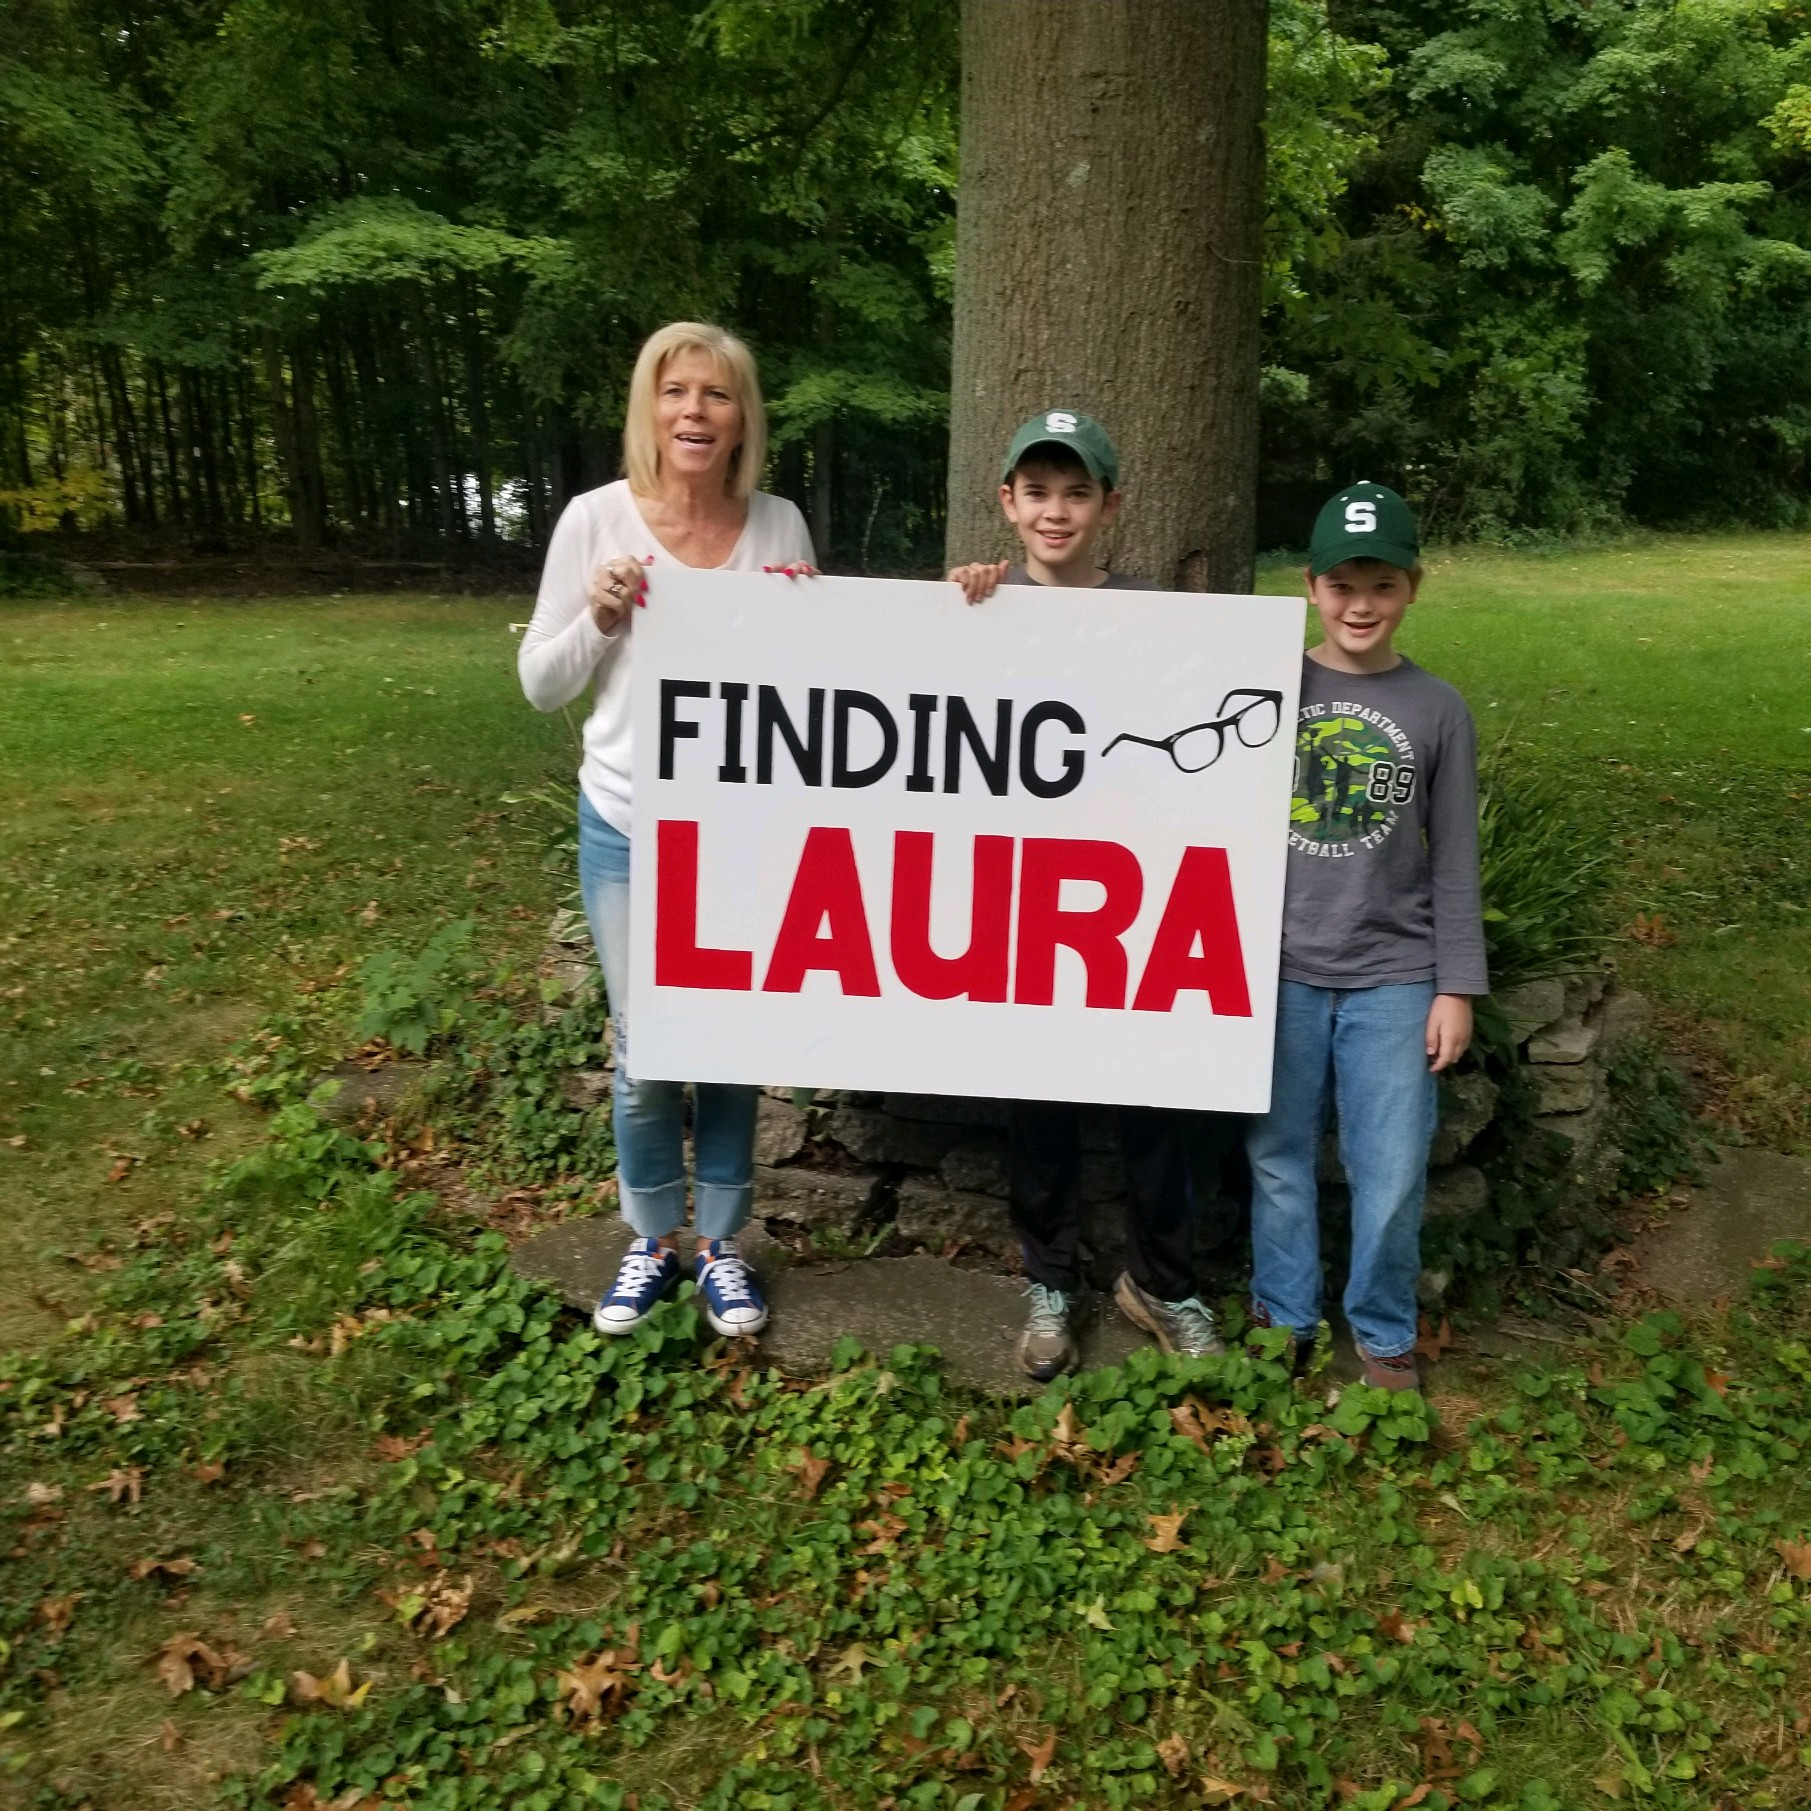 Finding Laura winners